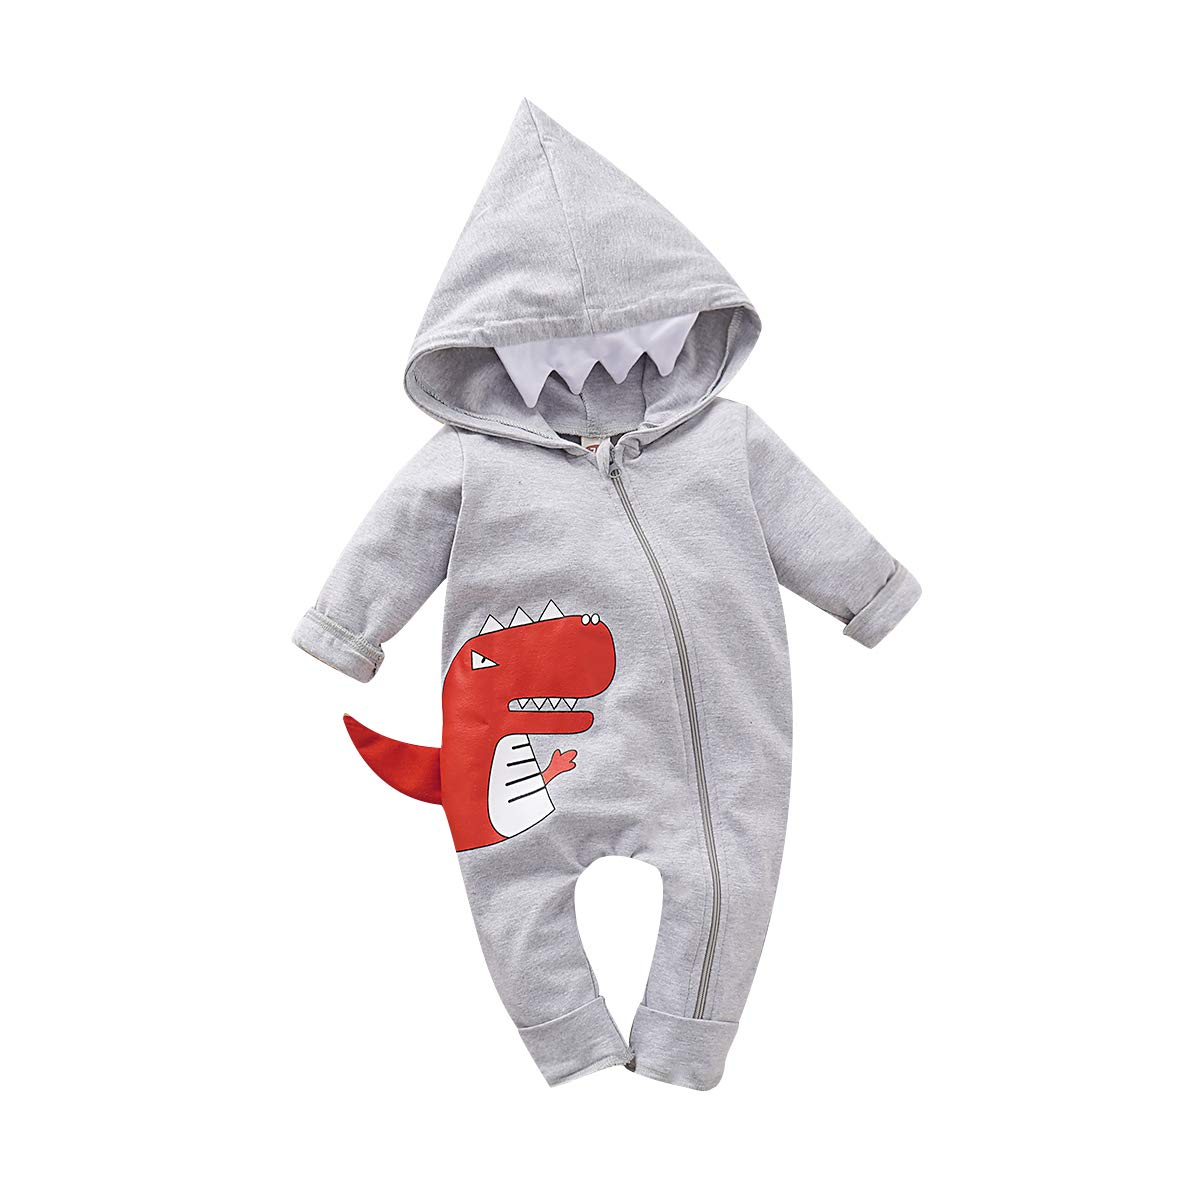 PROBABY Newborn Infant Baby Dinosaur Romper Jumpsuit Onesies Outfit for Boys Girls Hoodies Cute Dinosaur Bodysuit Outfits